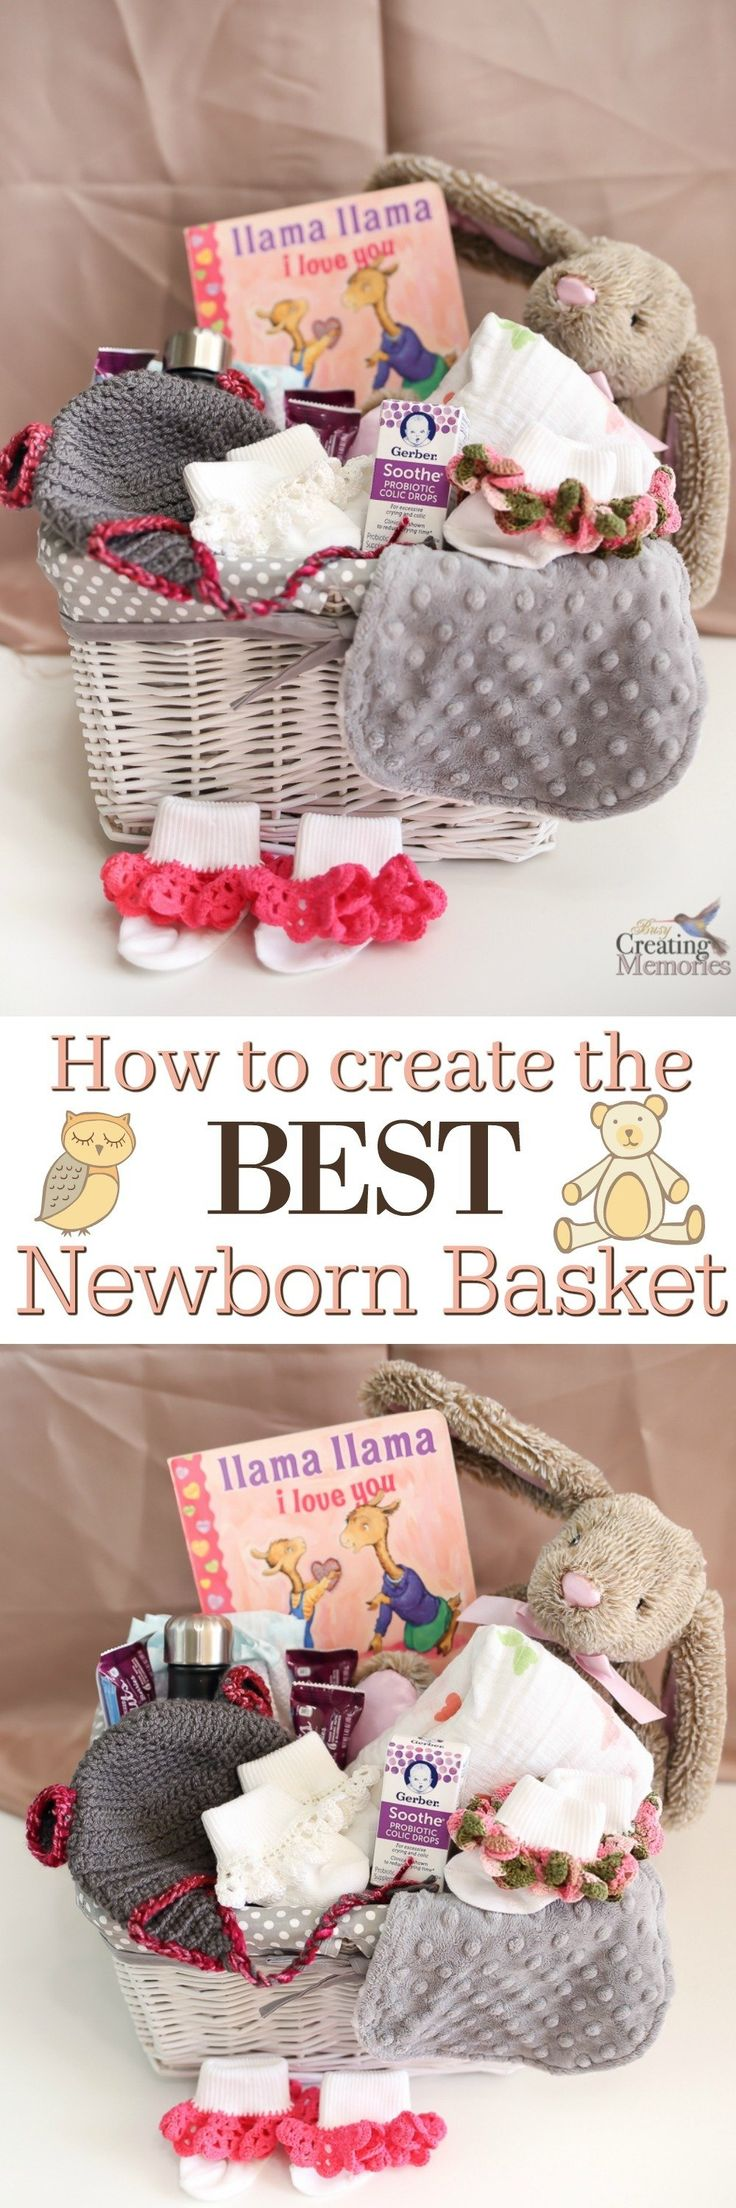 Don't give the same old boring gifts after a new baby arrives! Learn how to make the best newborn gift basket and the best items that stand out and help the new mom! AD